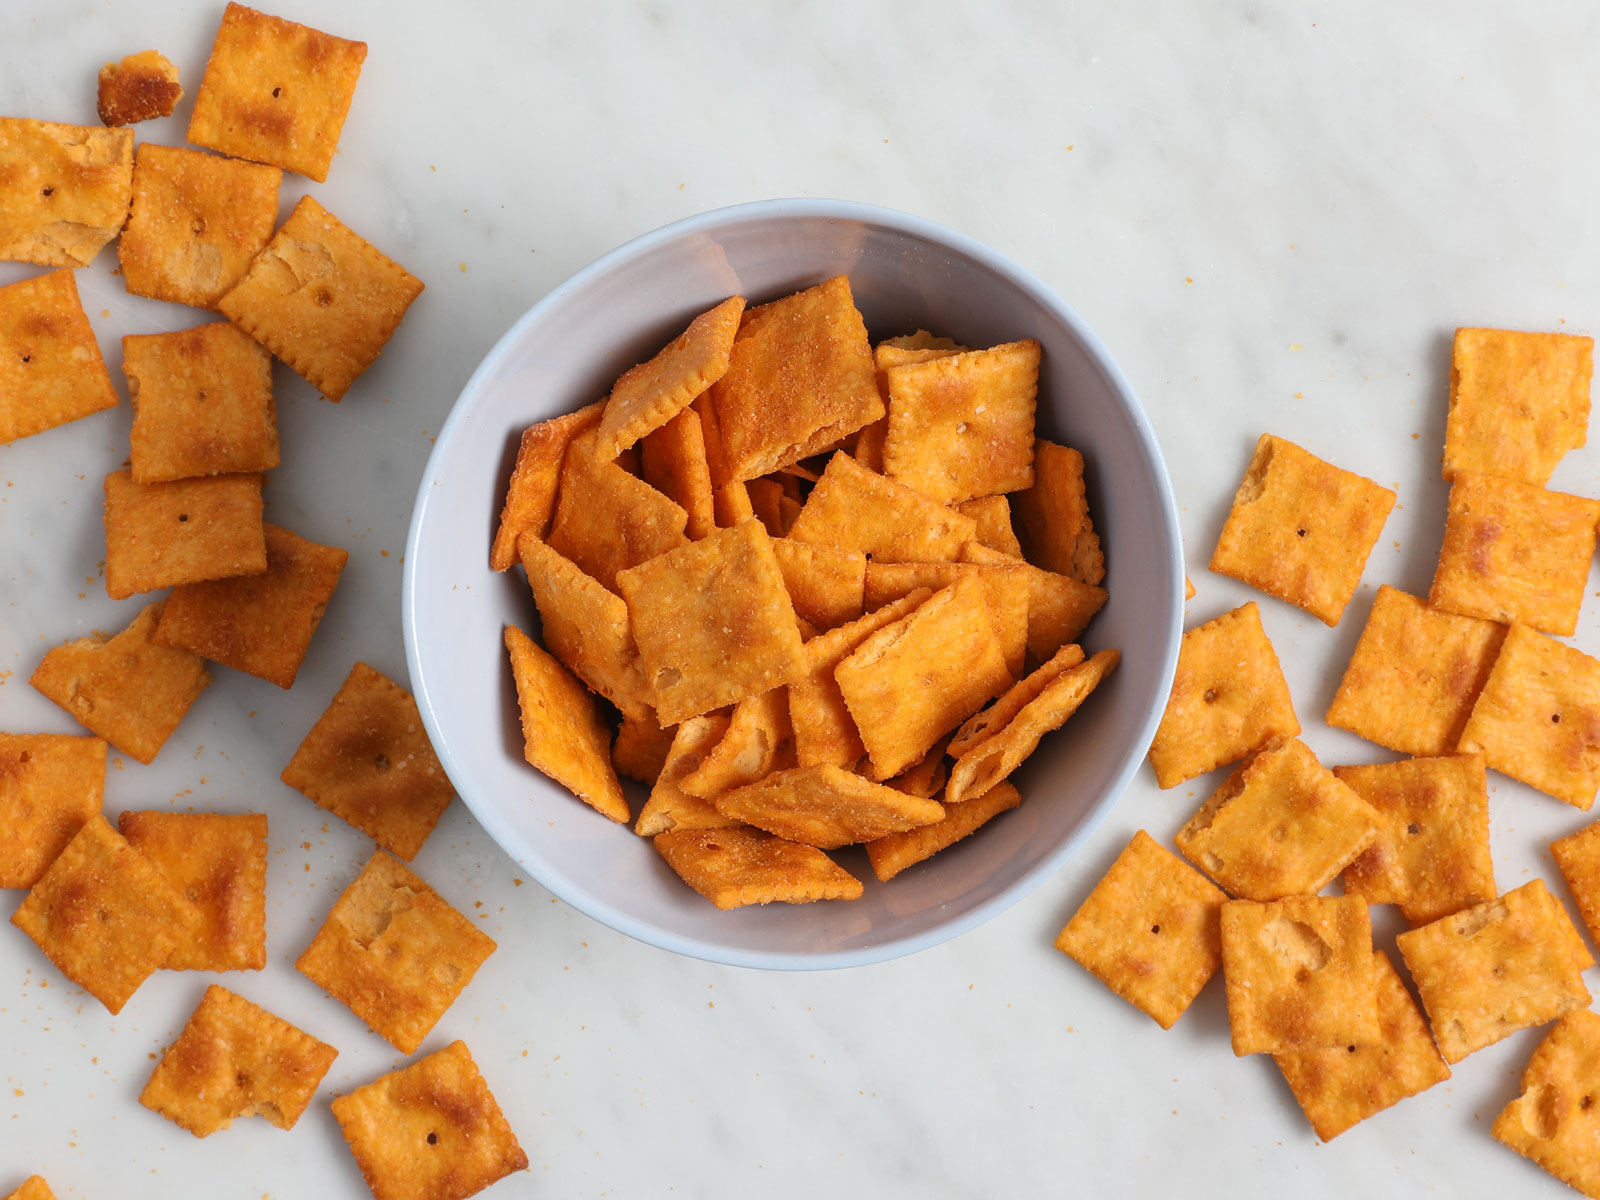 Cheddar Jack Cheez-Its